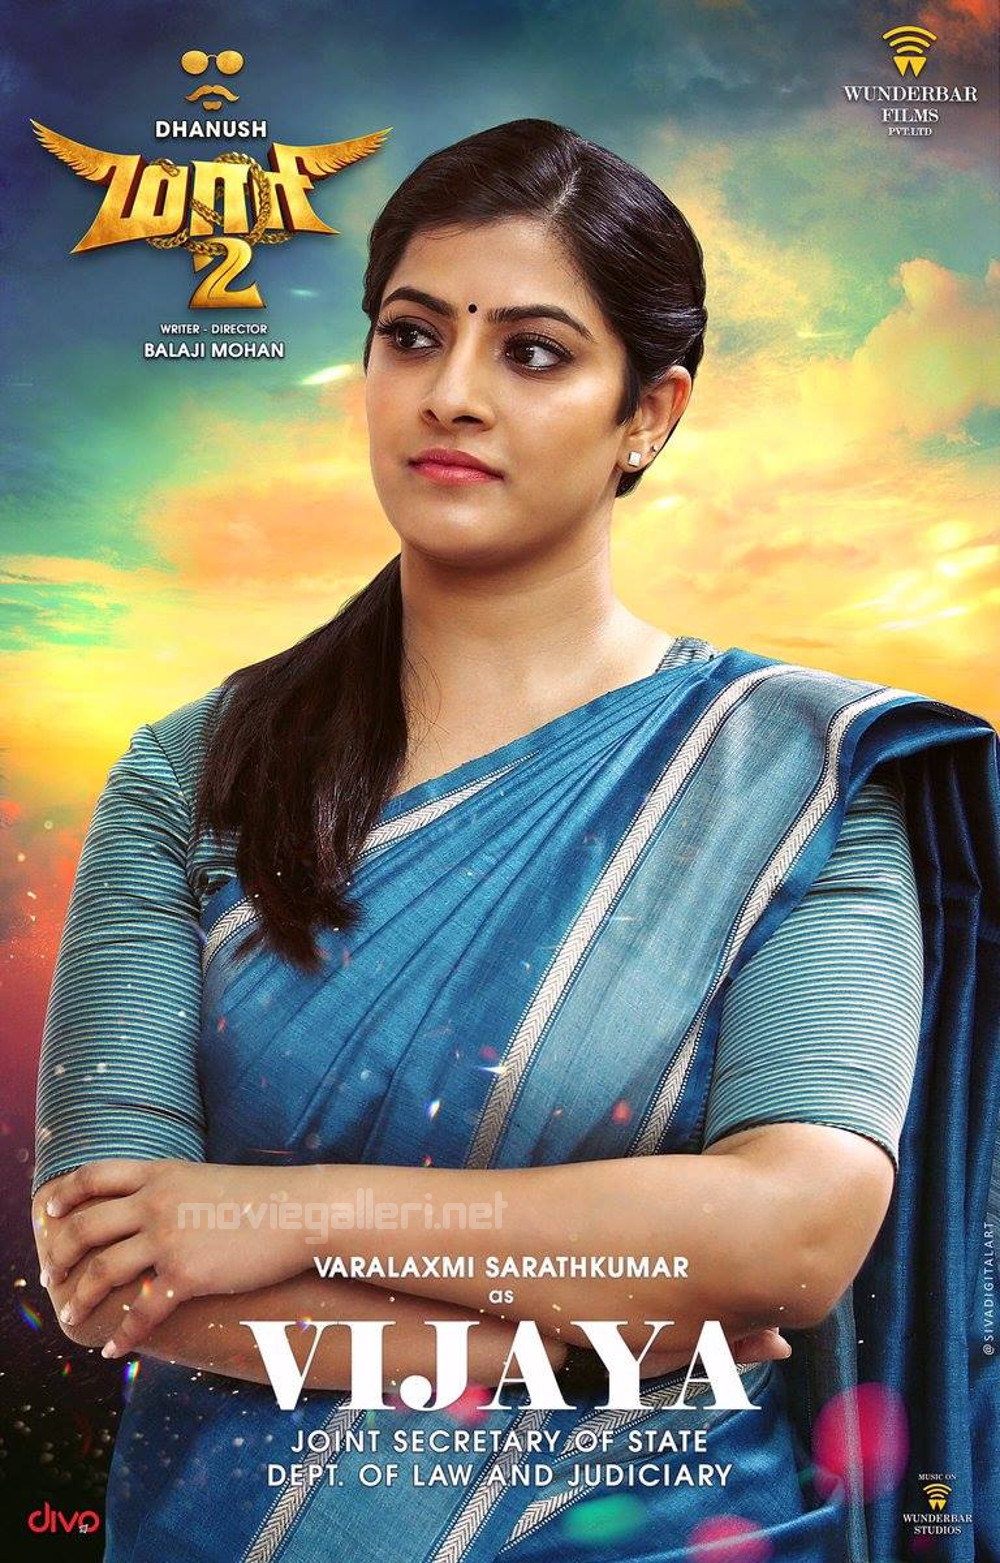 Actress Varalaxmi Sarathkumar as Vijaya in Maari 2 Movie Poster HD